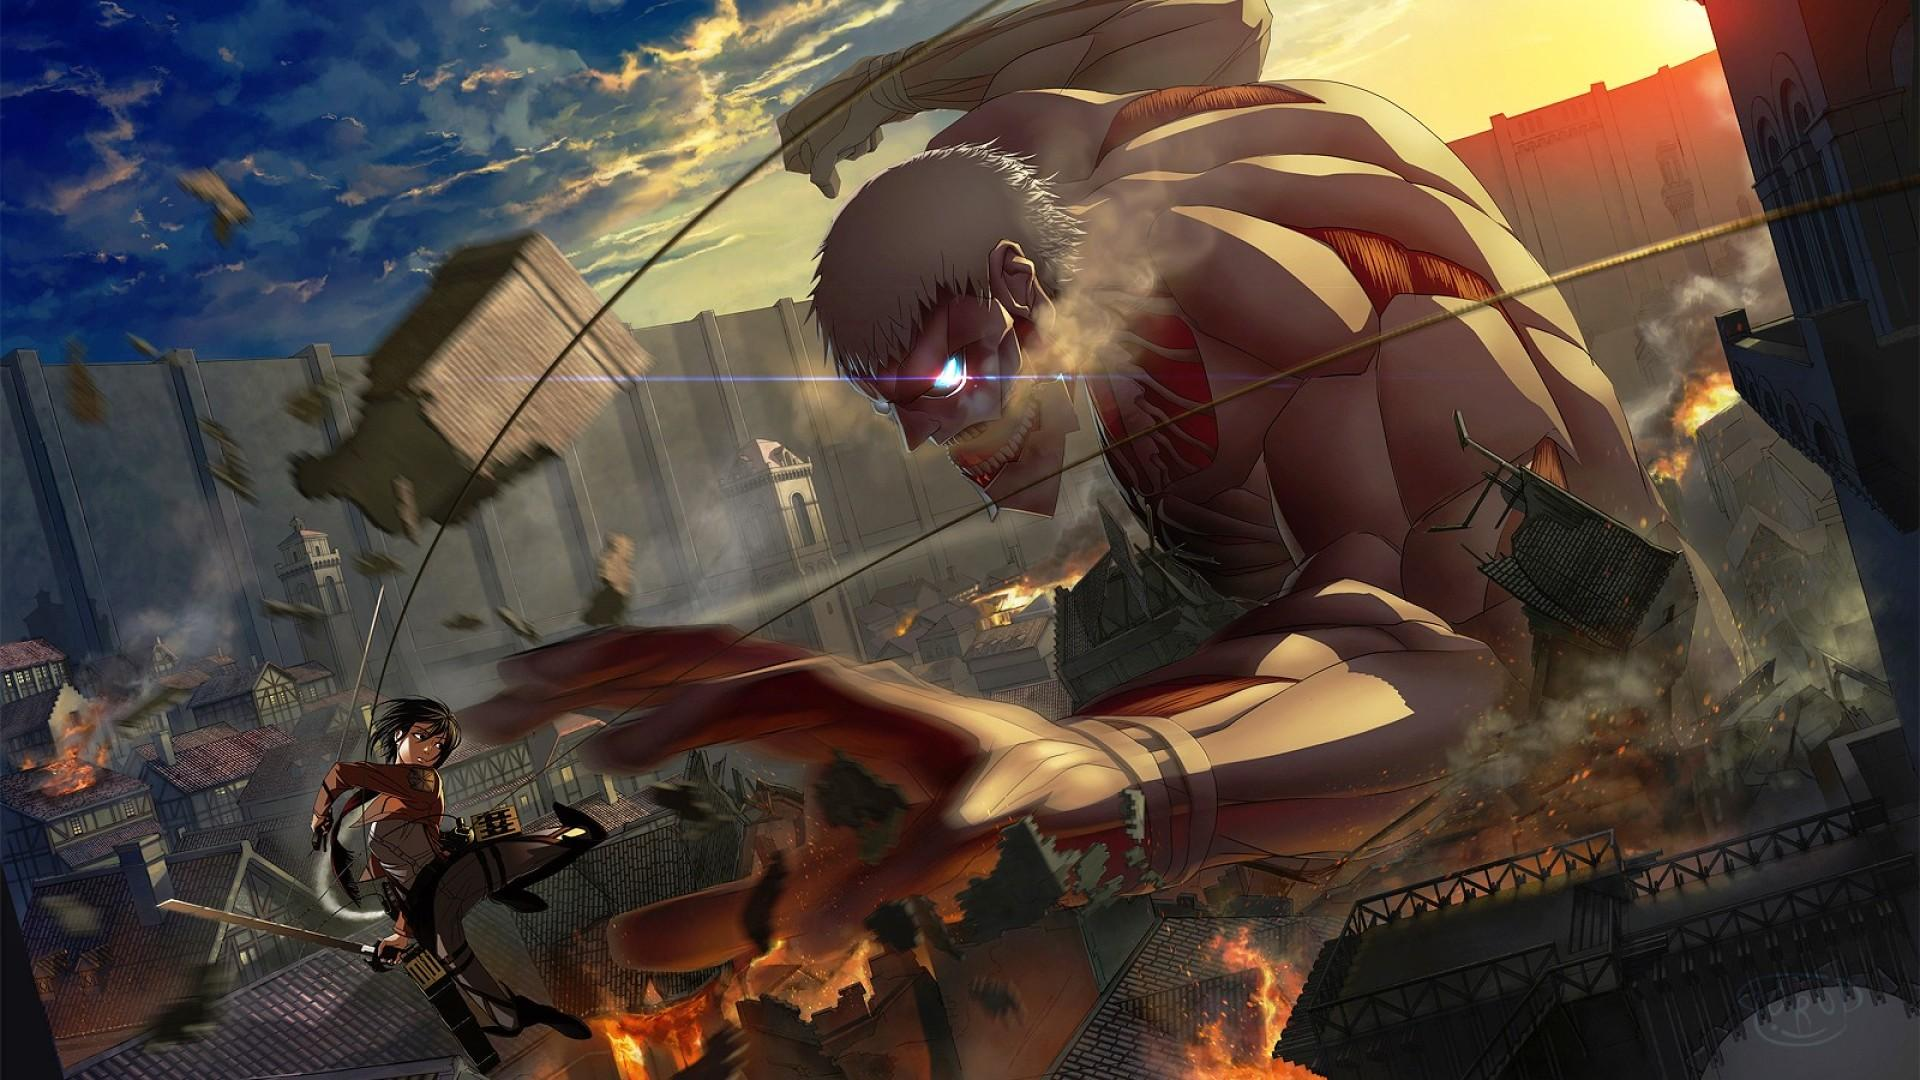 Watch Attack on Titan Season 4 Episode 7 Full Summaries, Raw Scans, Storyline, Preview & Much More Updates